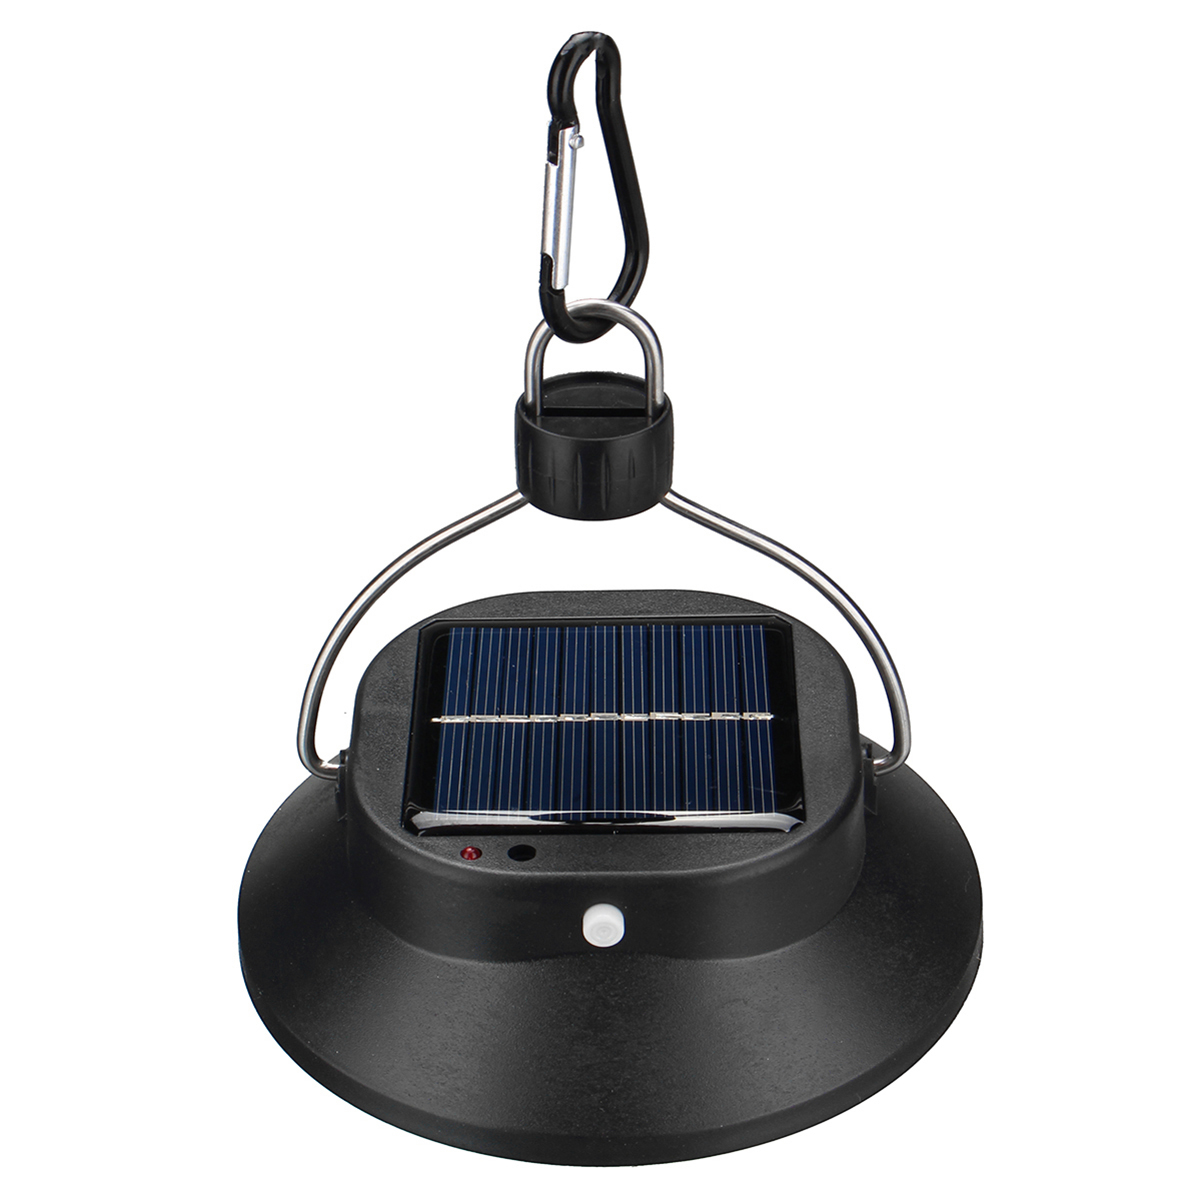 28 LED Portable Lamp Lantern Outdoor Night LED Solar Powered Flashlights Camping Tent Light Lamp USB